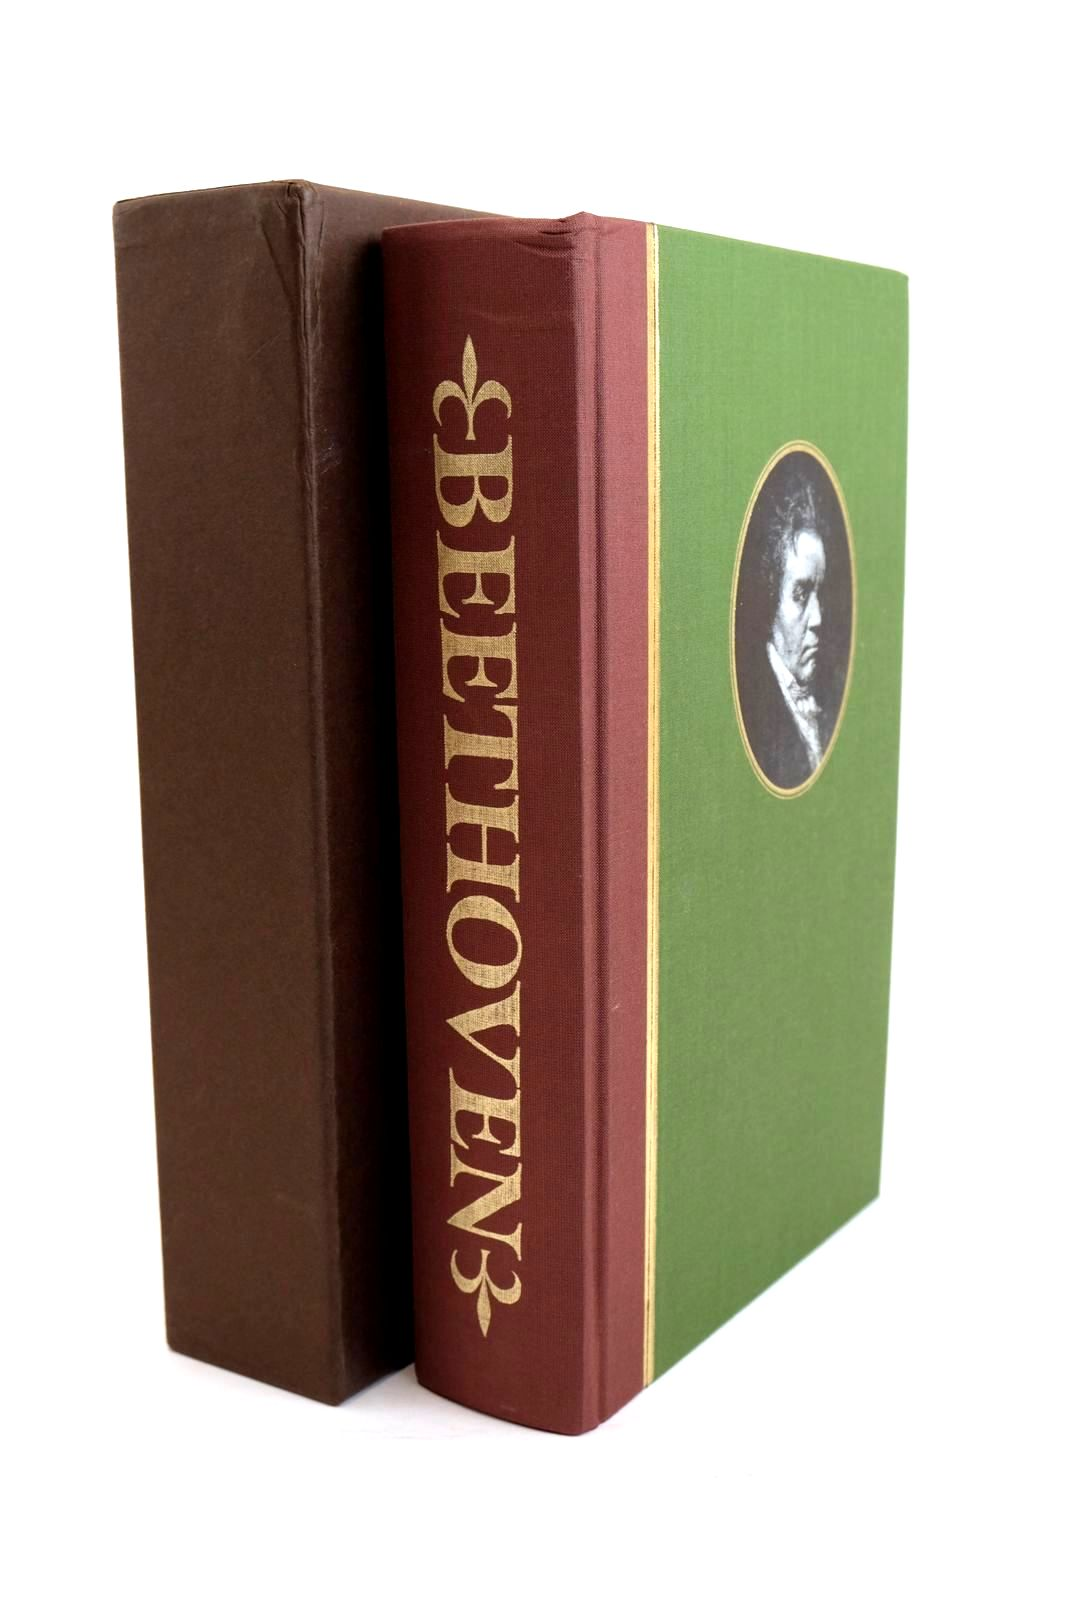 Photo of LIFE OF BEETHOVEN written by Thayer, Alexander Forbes, Elliot Curteis, Ian published by Folio Society (STOCK CODE: 1320548)  for sale by Stella & Rose's Books